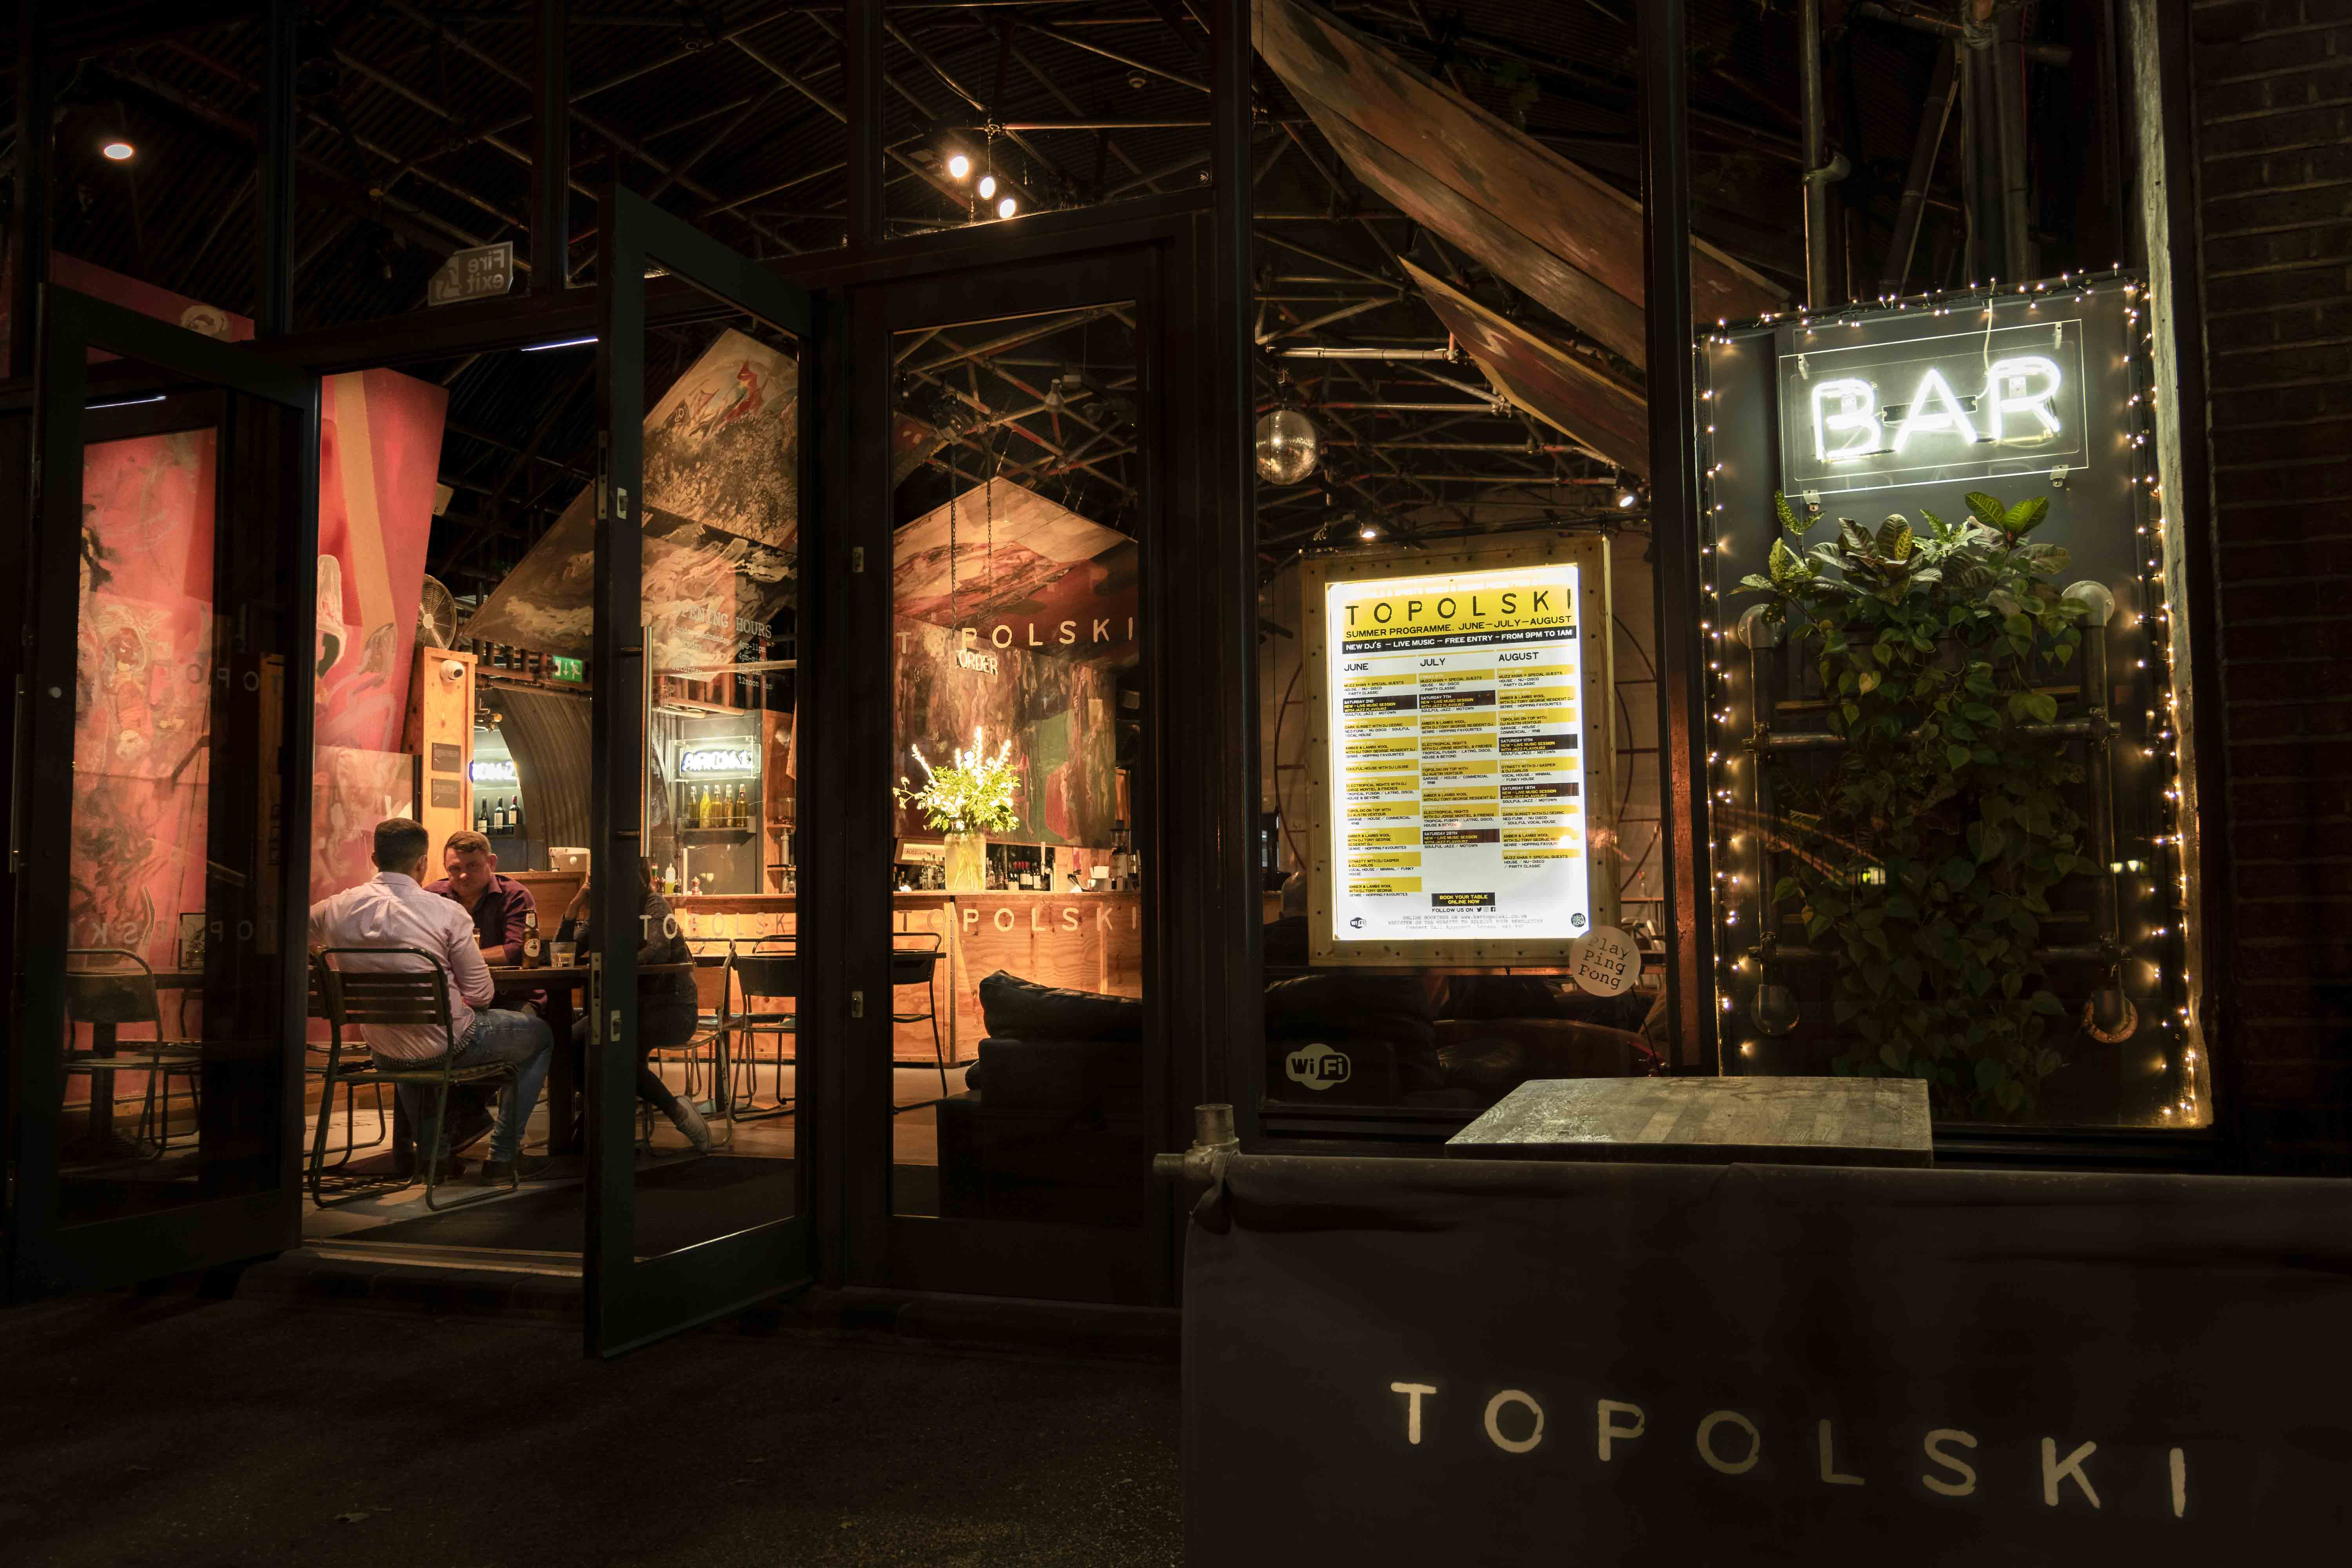 Topolski Gallery and Bar